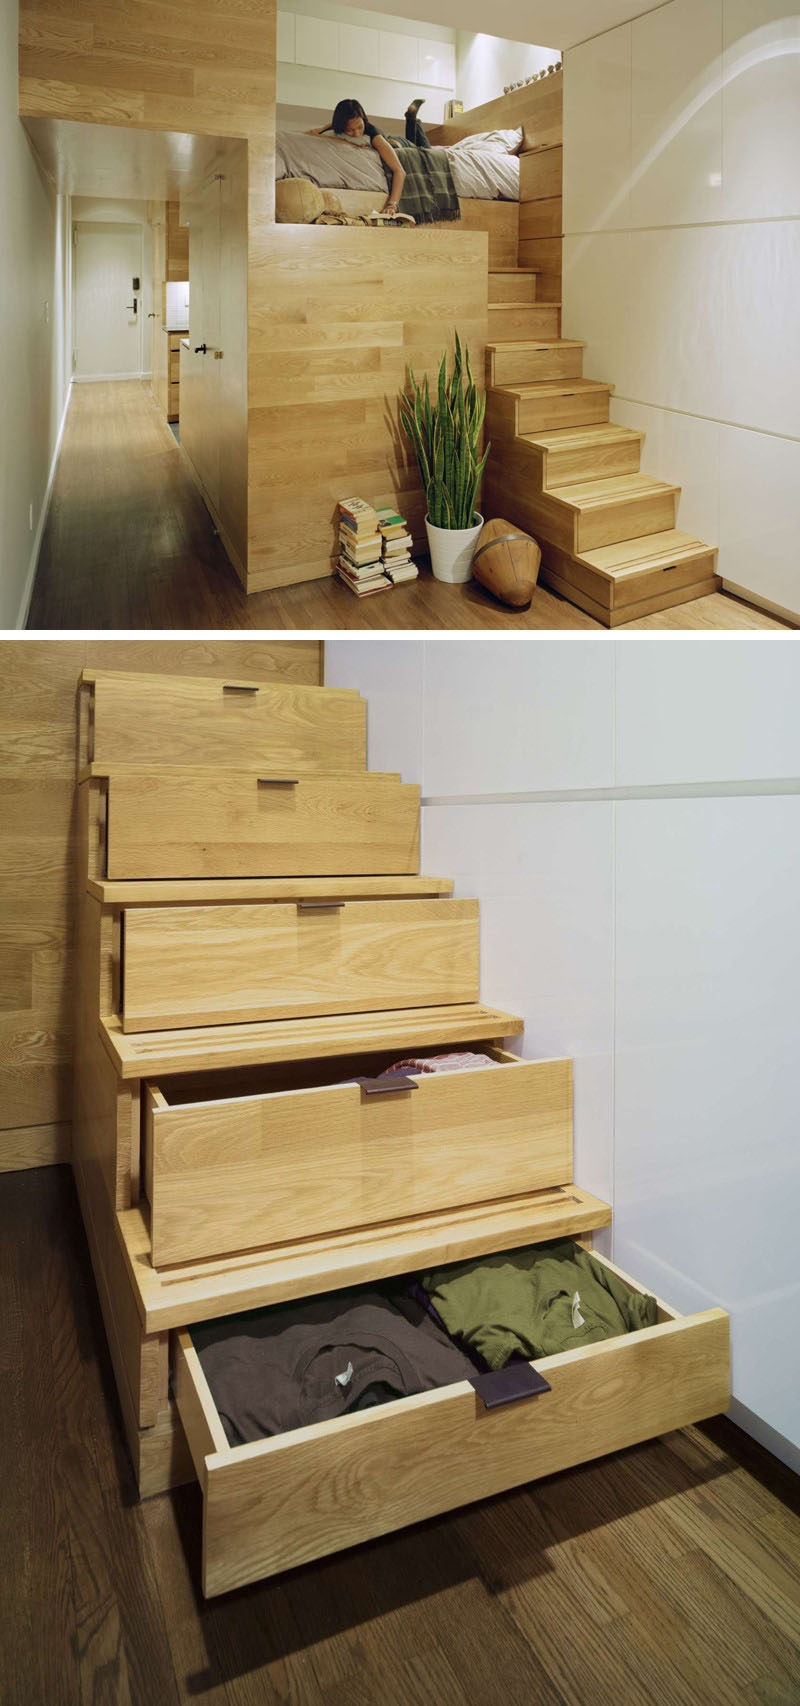 13 Stair Design Ideas For Small Spaces | Spiral Staircase Into Loft | Attic Stairs | Ladder | Bedroom | Space Saver | Staircase Ideas